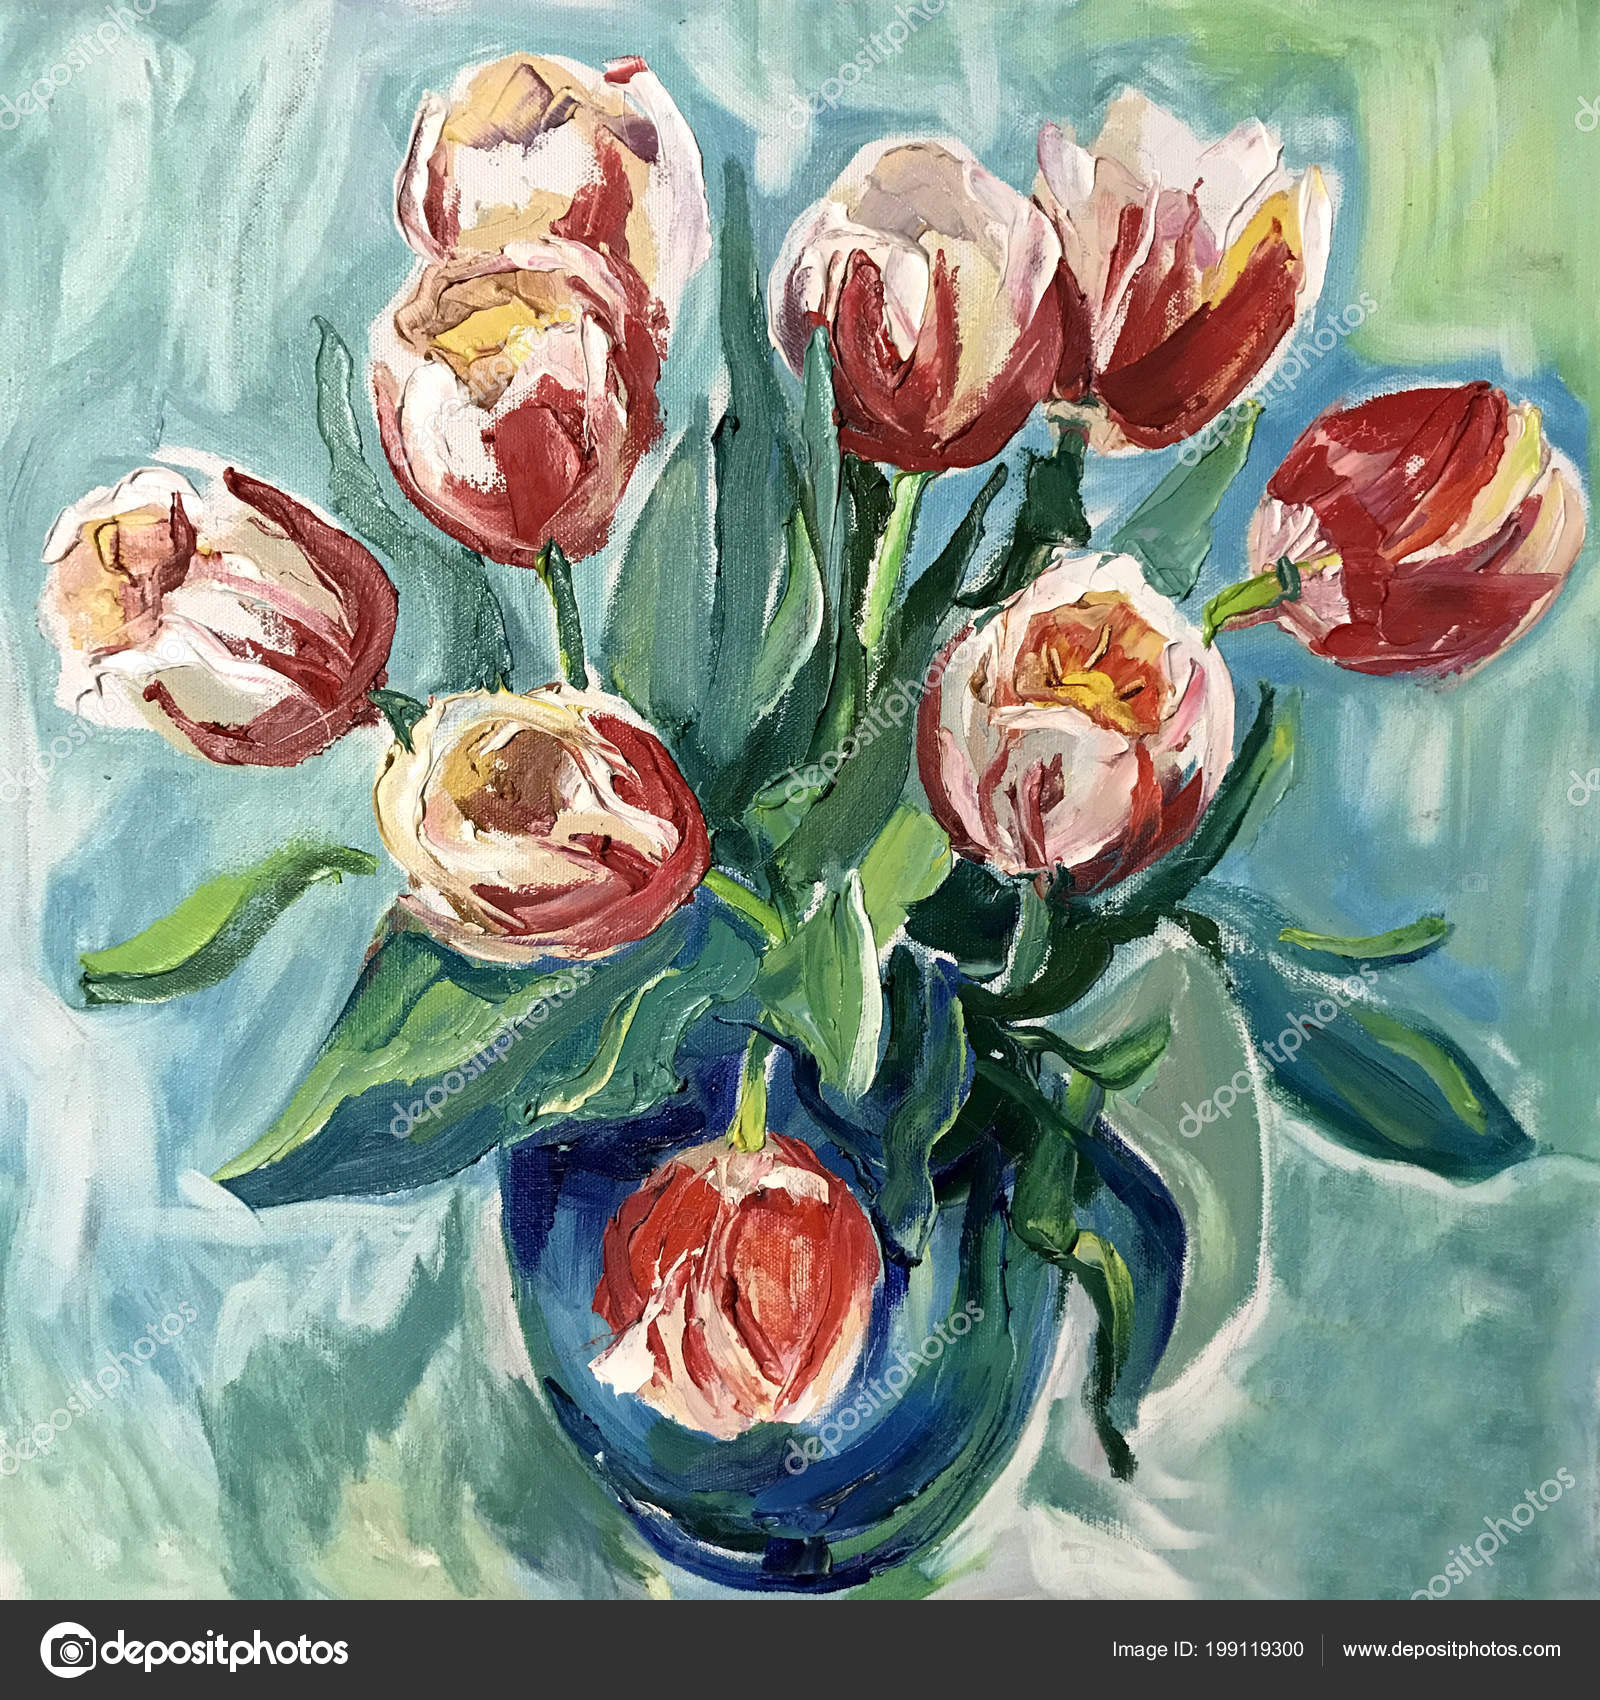 Talented Artist Painted A Still Life, Flowers In A Vase